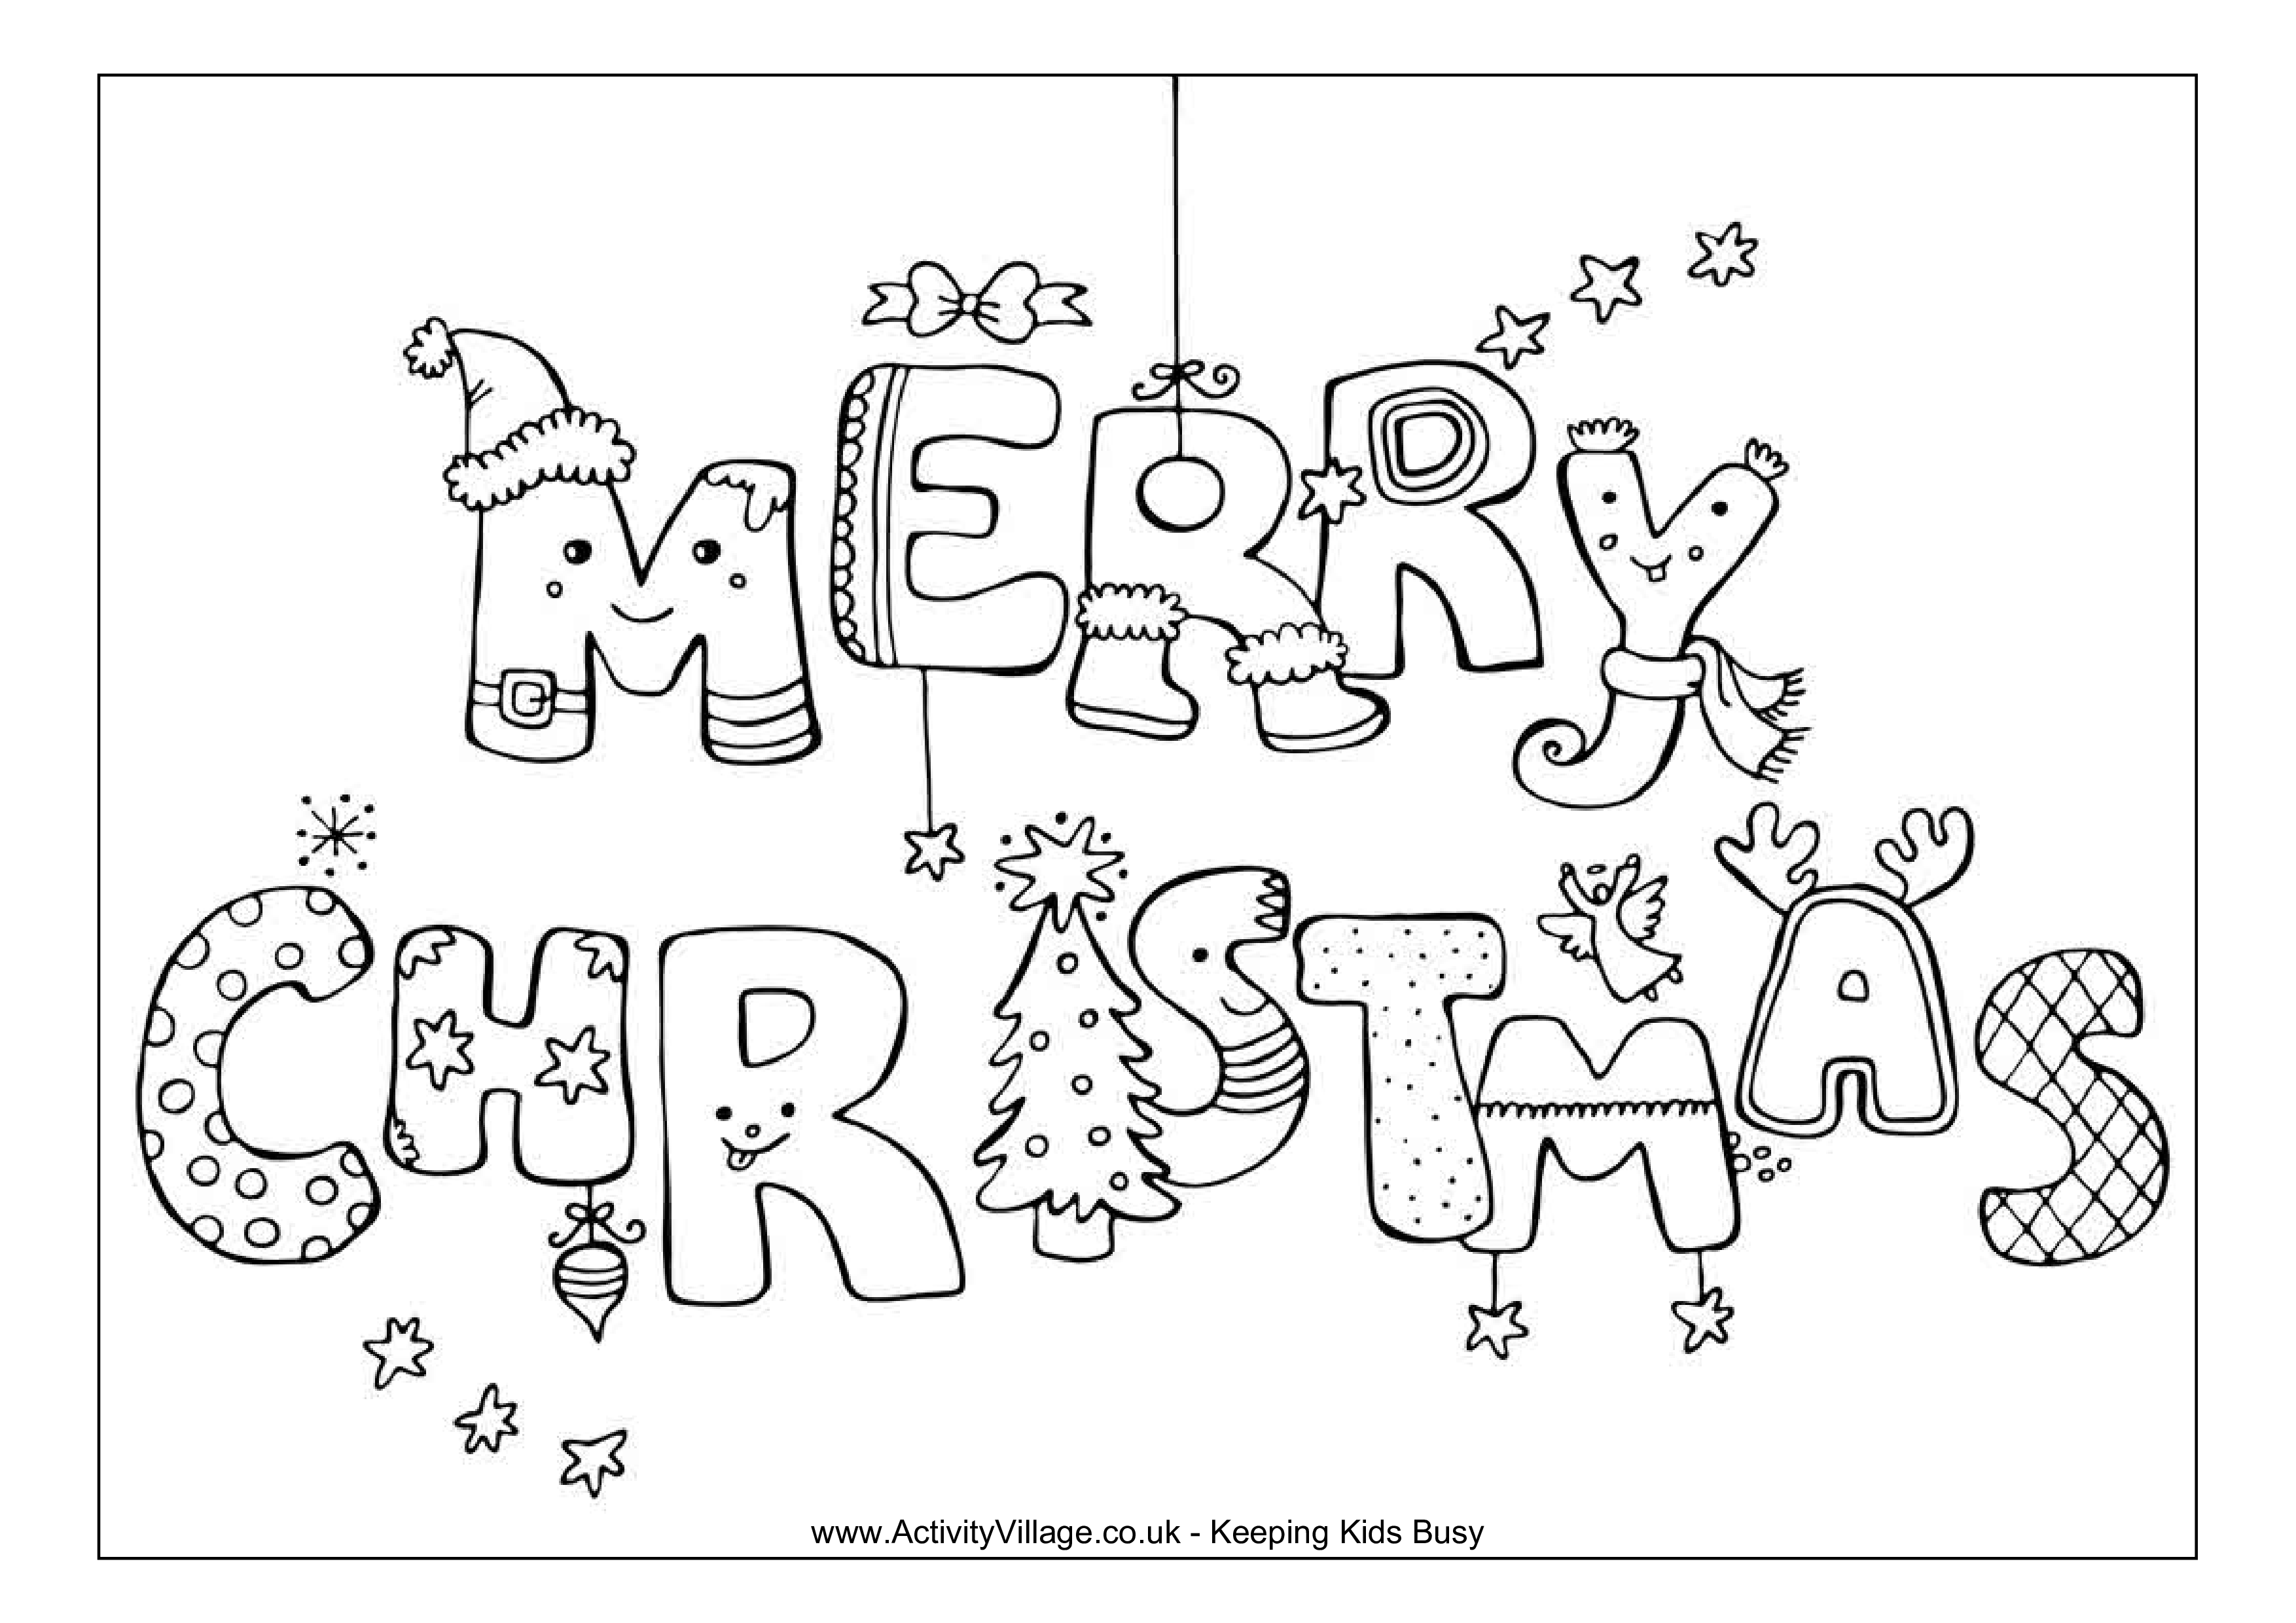 Merry Christmas Colouring In Pages With Free Coloring Page Templates At